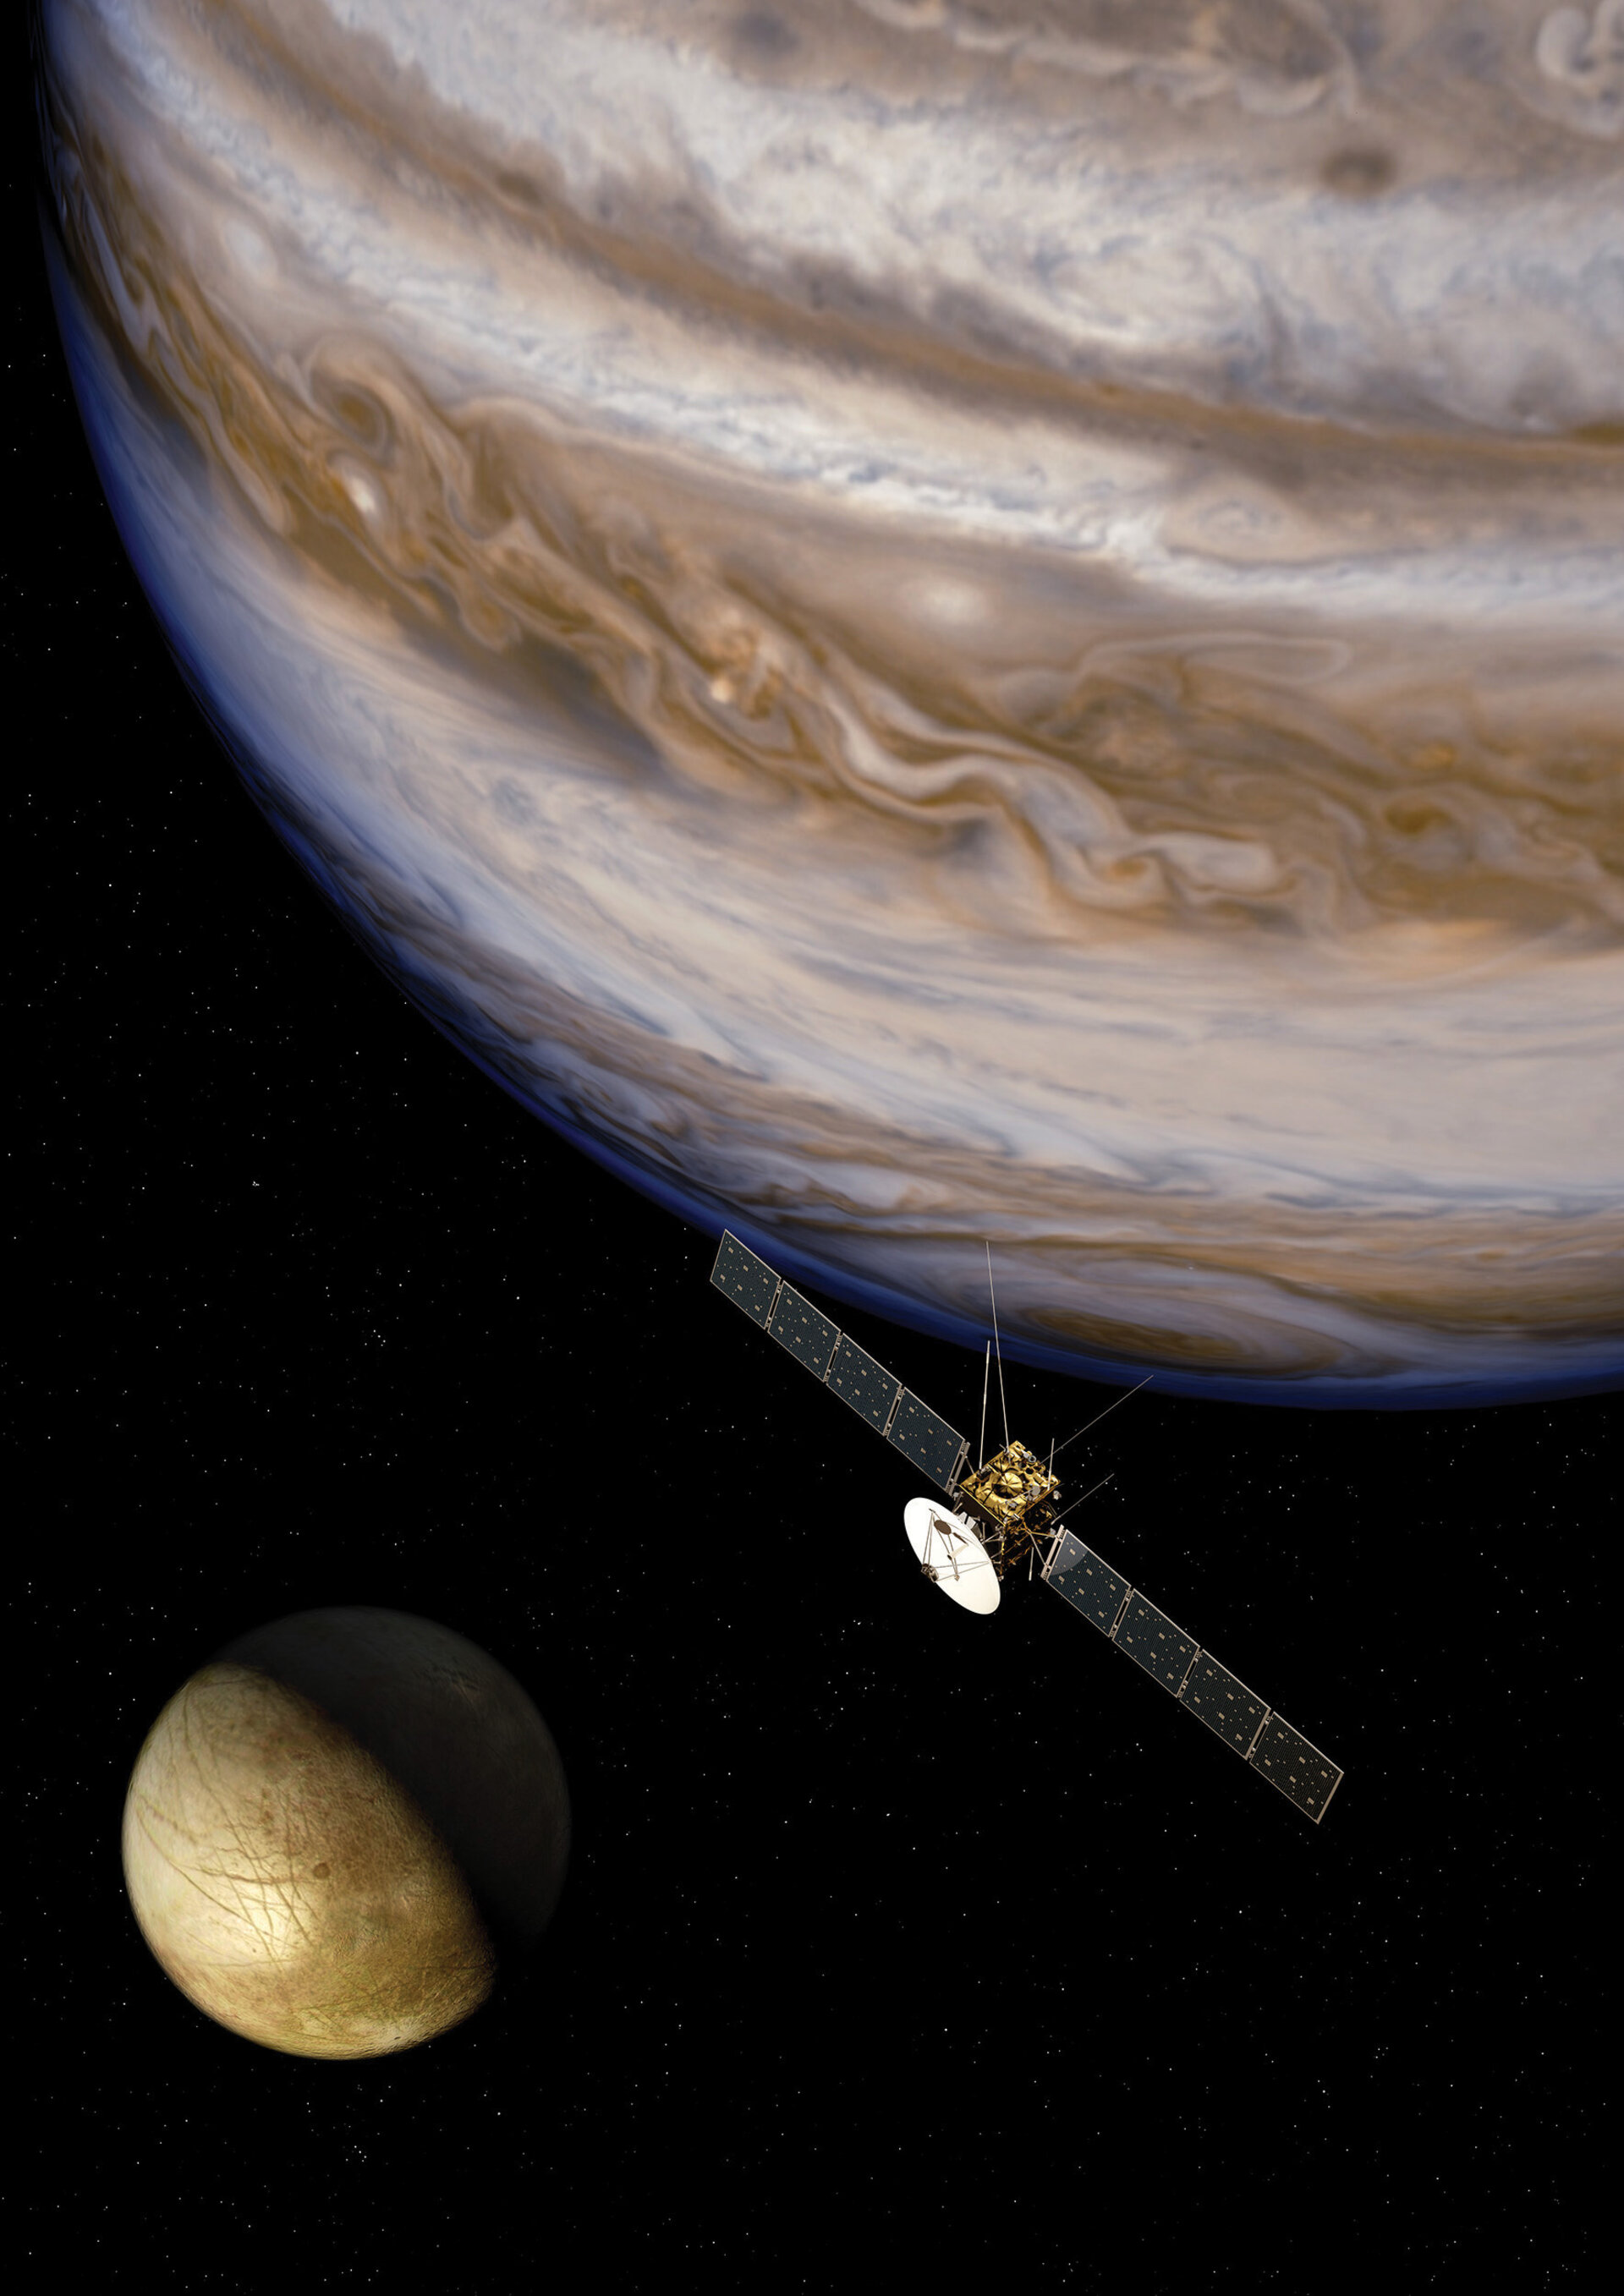 Europe's first mission to the Jupiter system